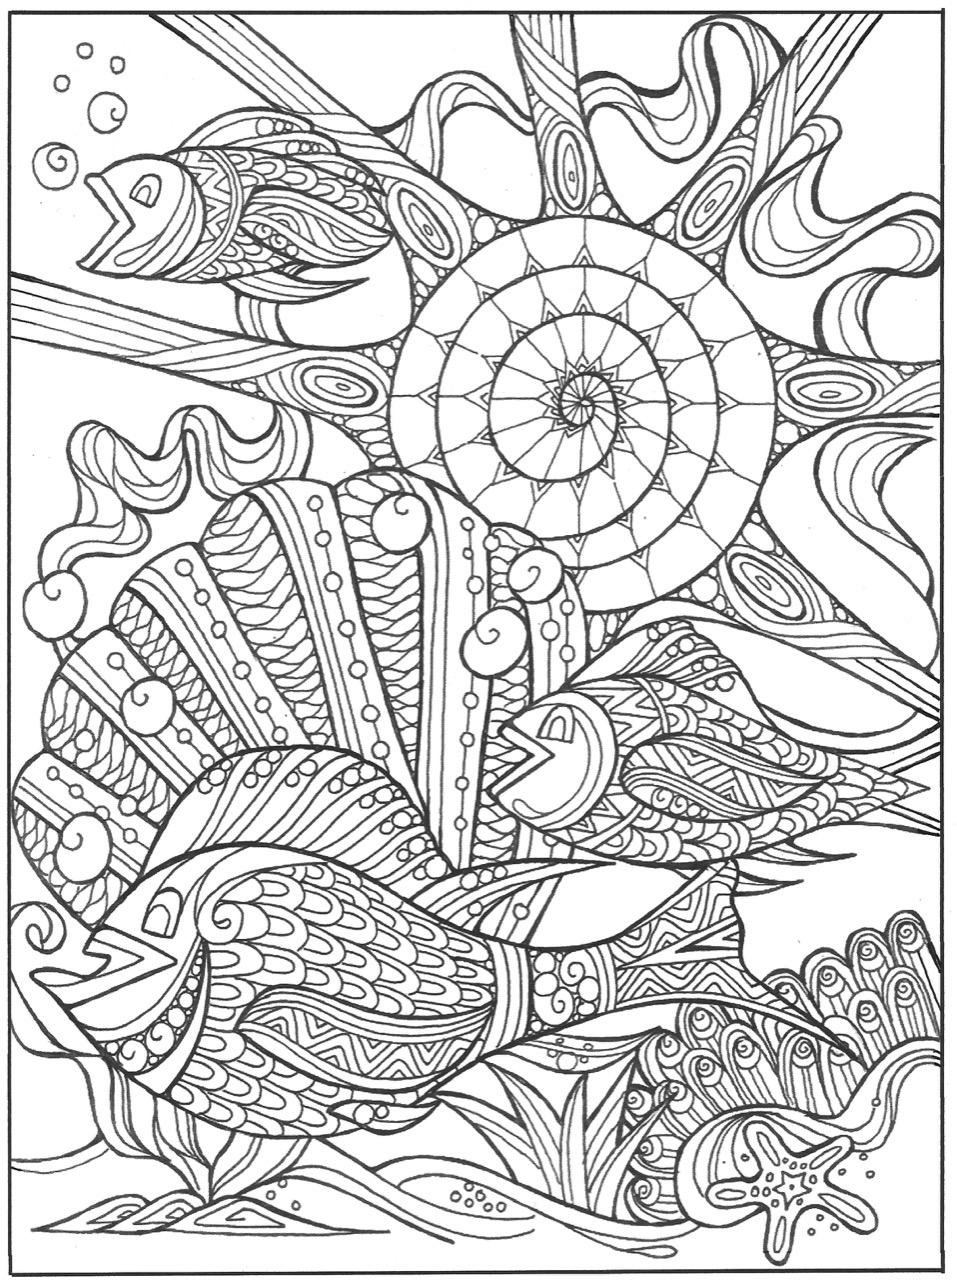 0ef6649a3 Under-the-Sea-in-Paradise-Coloring-Page_ExtraLarge1000_ID-3271091.jpg?v=3271091